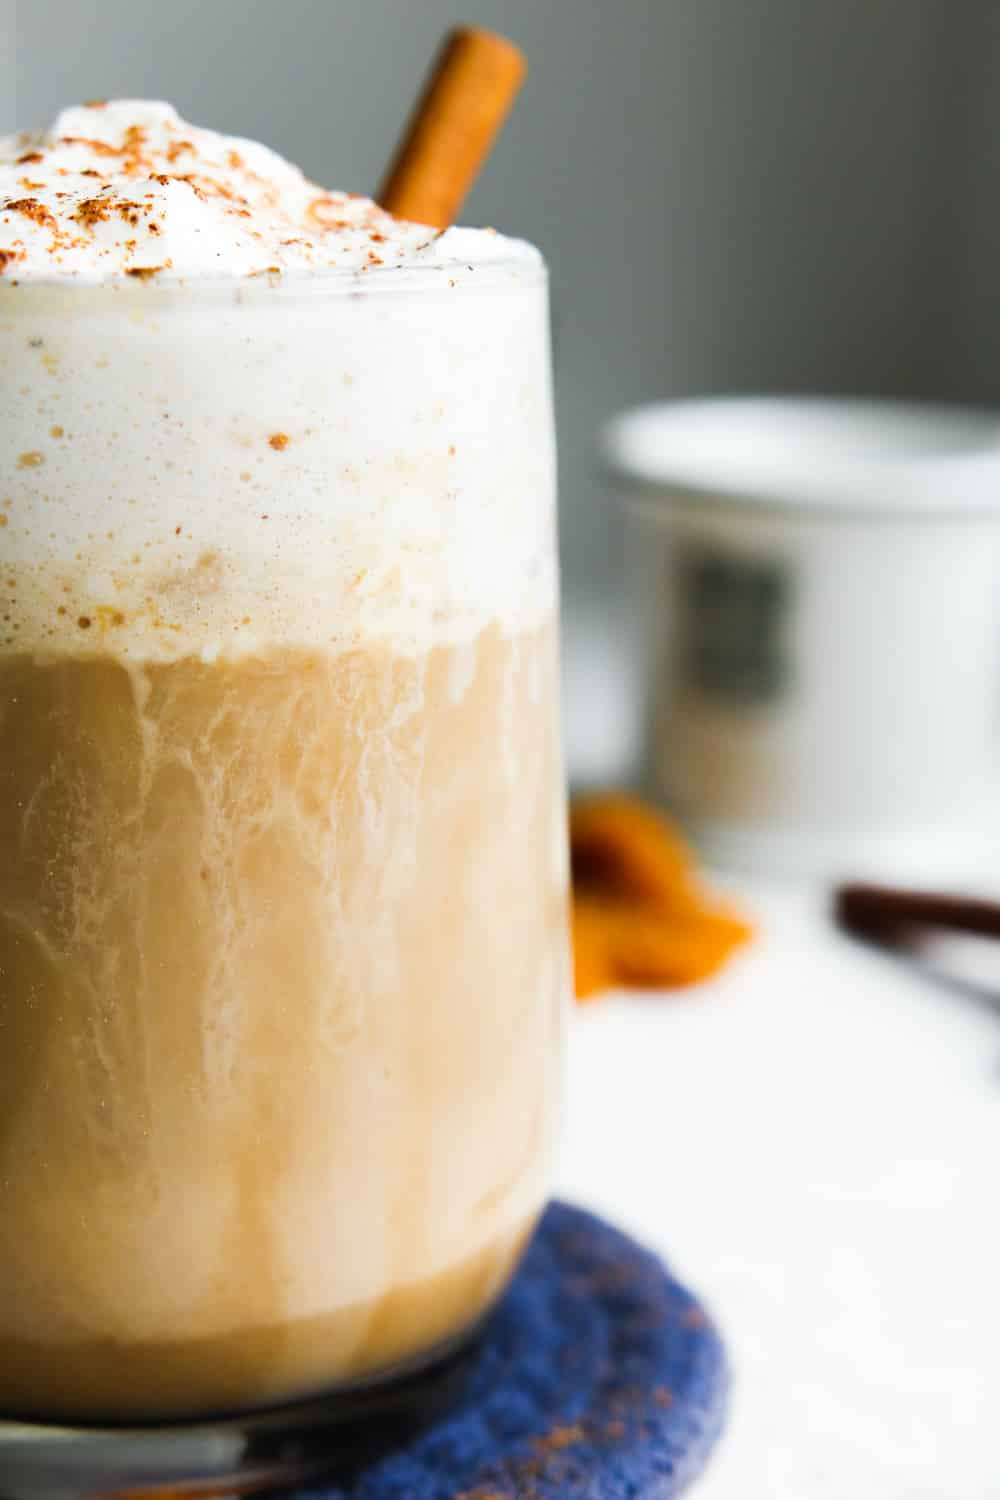 A pumpkin spice latte in a clear glass topped with whipped cream and set on a blue coaster.